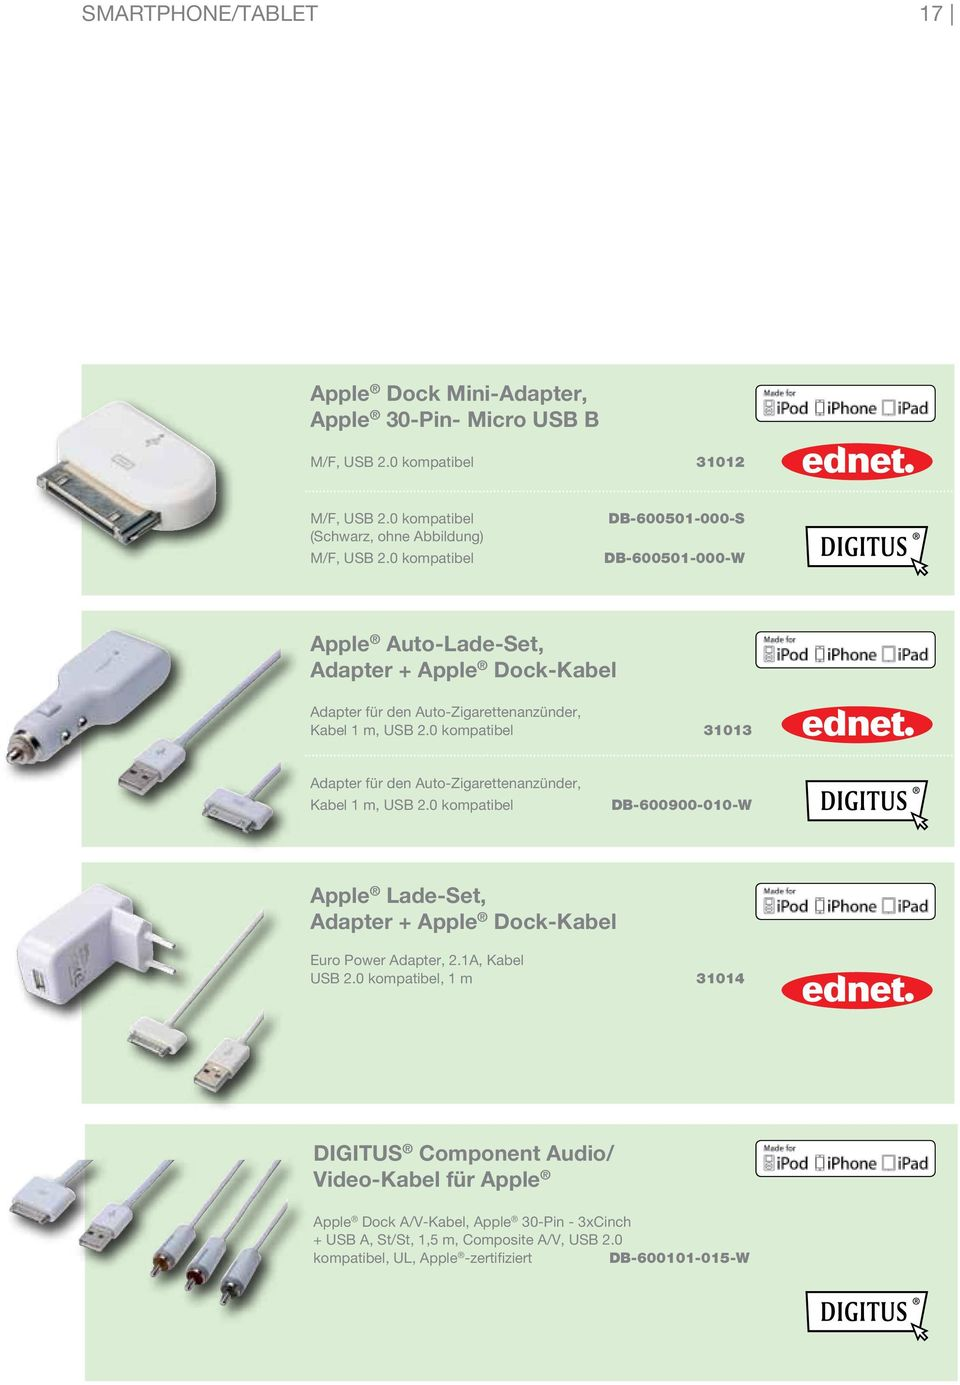 0 kompatibel 31013 Adapter für den Auto-Zigarettenanzünder, Kabel 1 m, USB 2.0 kompatibel DB-600900-010-W Apple Lade-Set, Adapter + Apple Dock-Kabel Euro Power Adapter, 2.